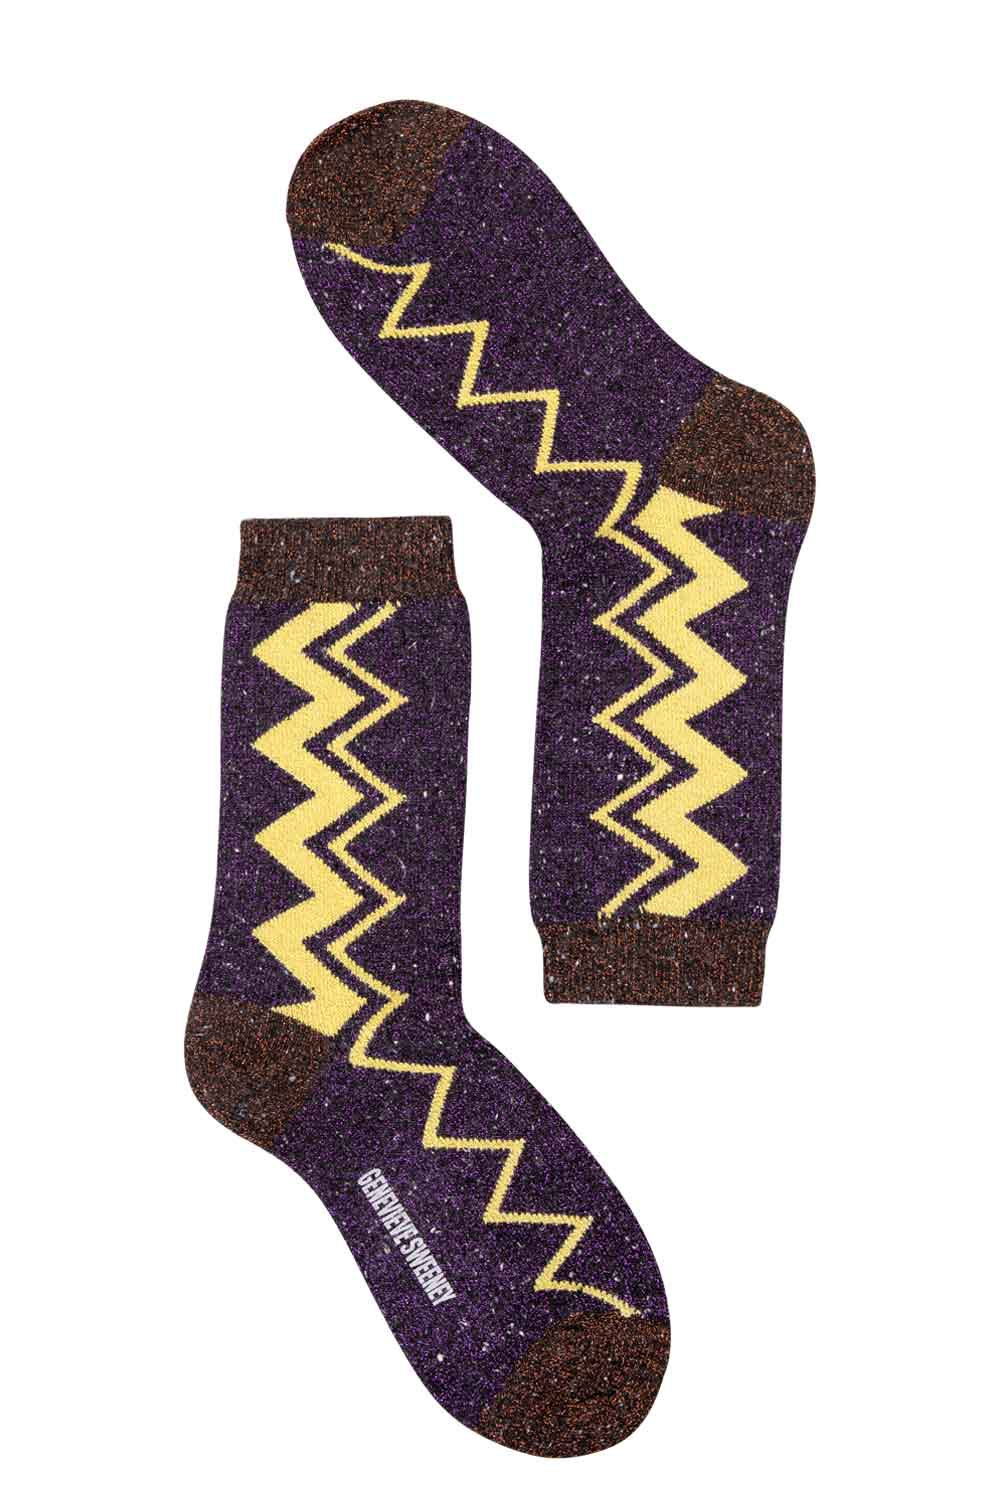 sparkly lurex purple yellow stripe socks made in Britain